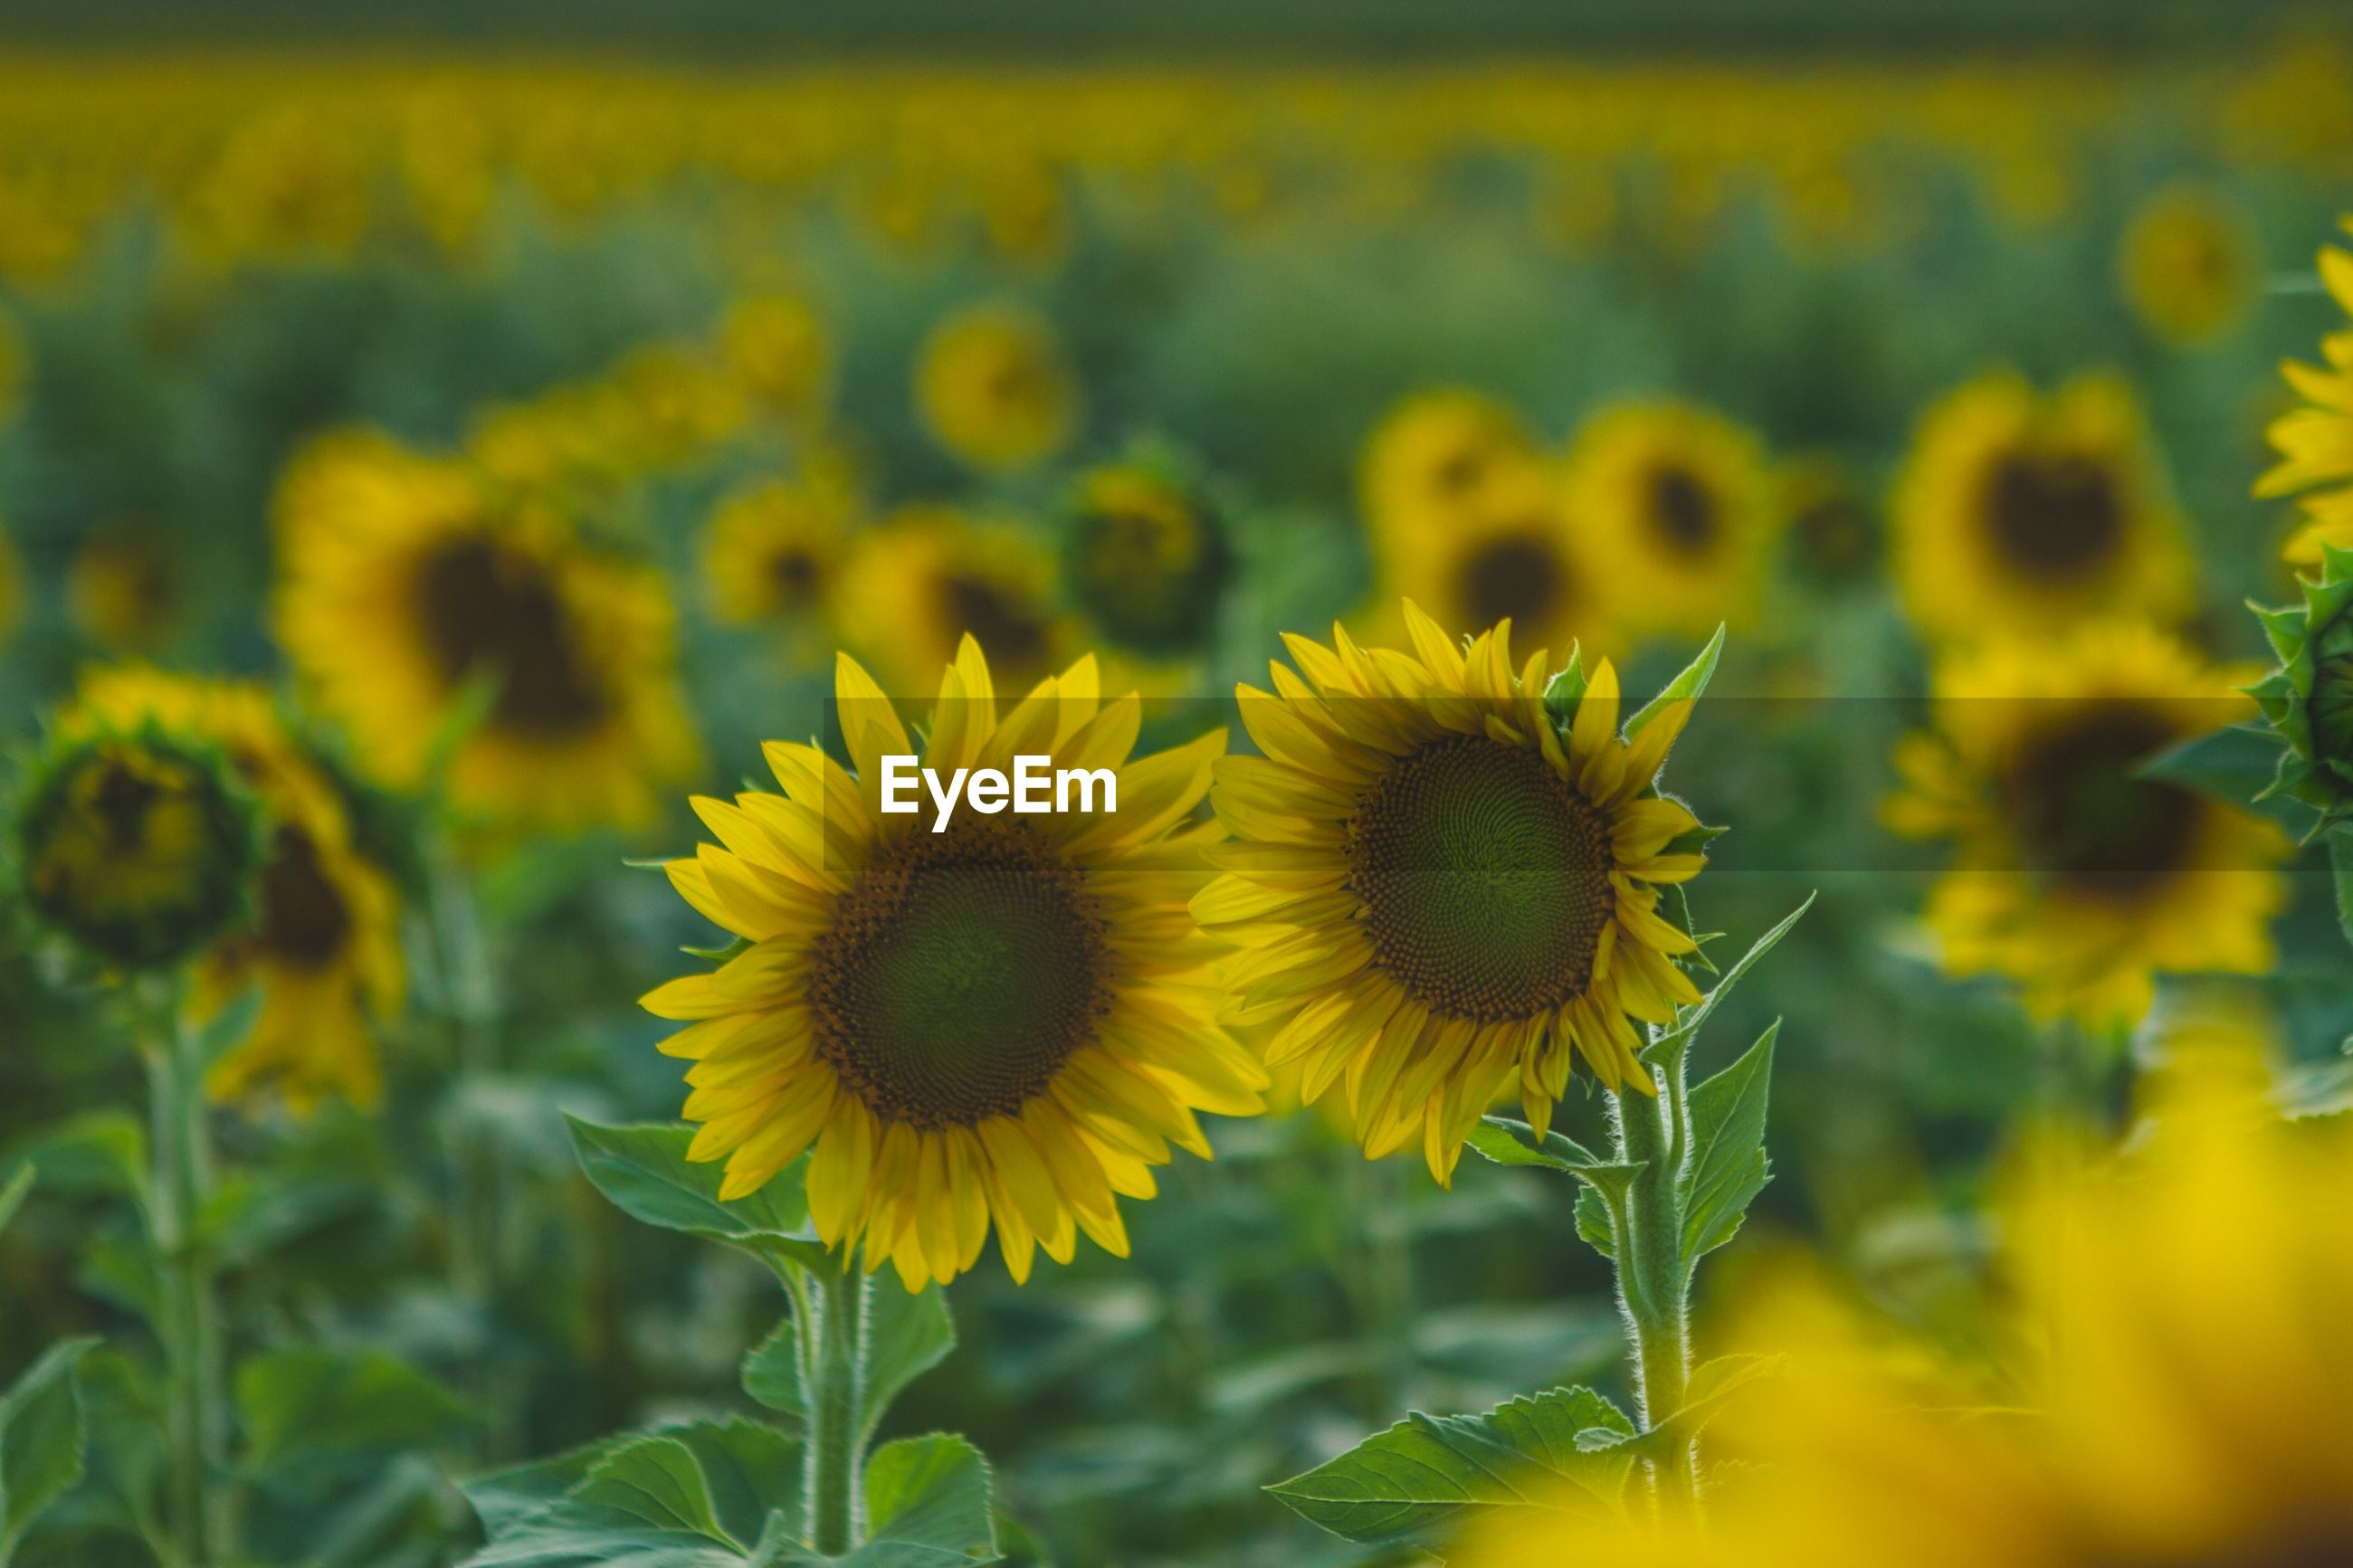 Sunflowers blooming on field